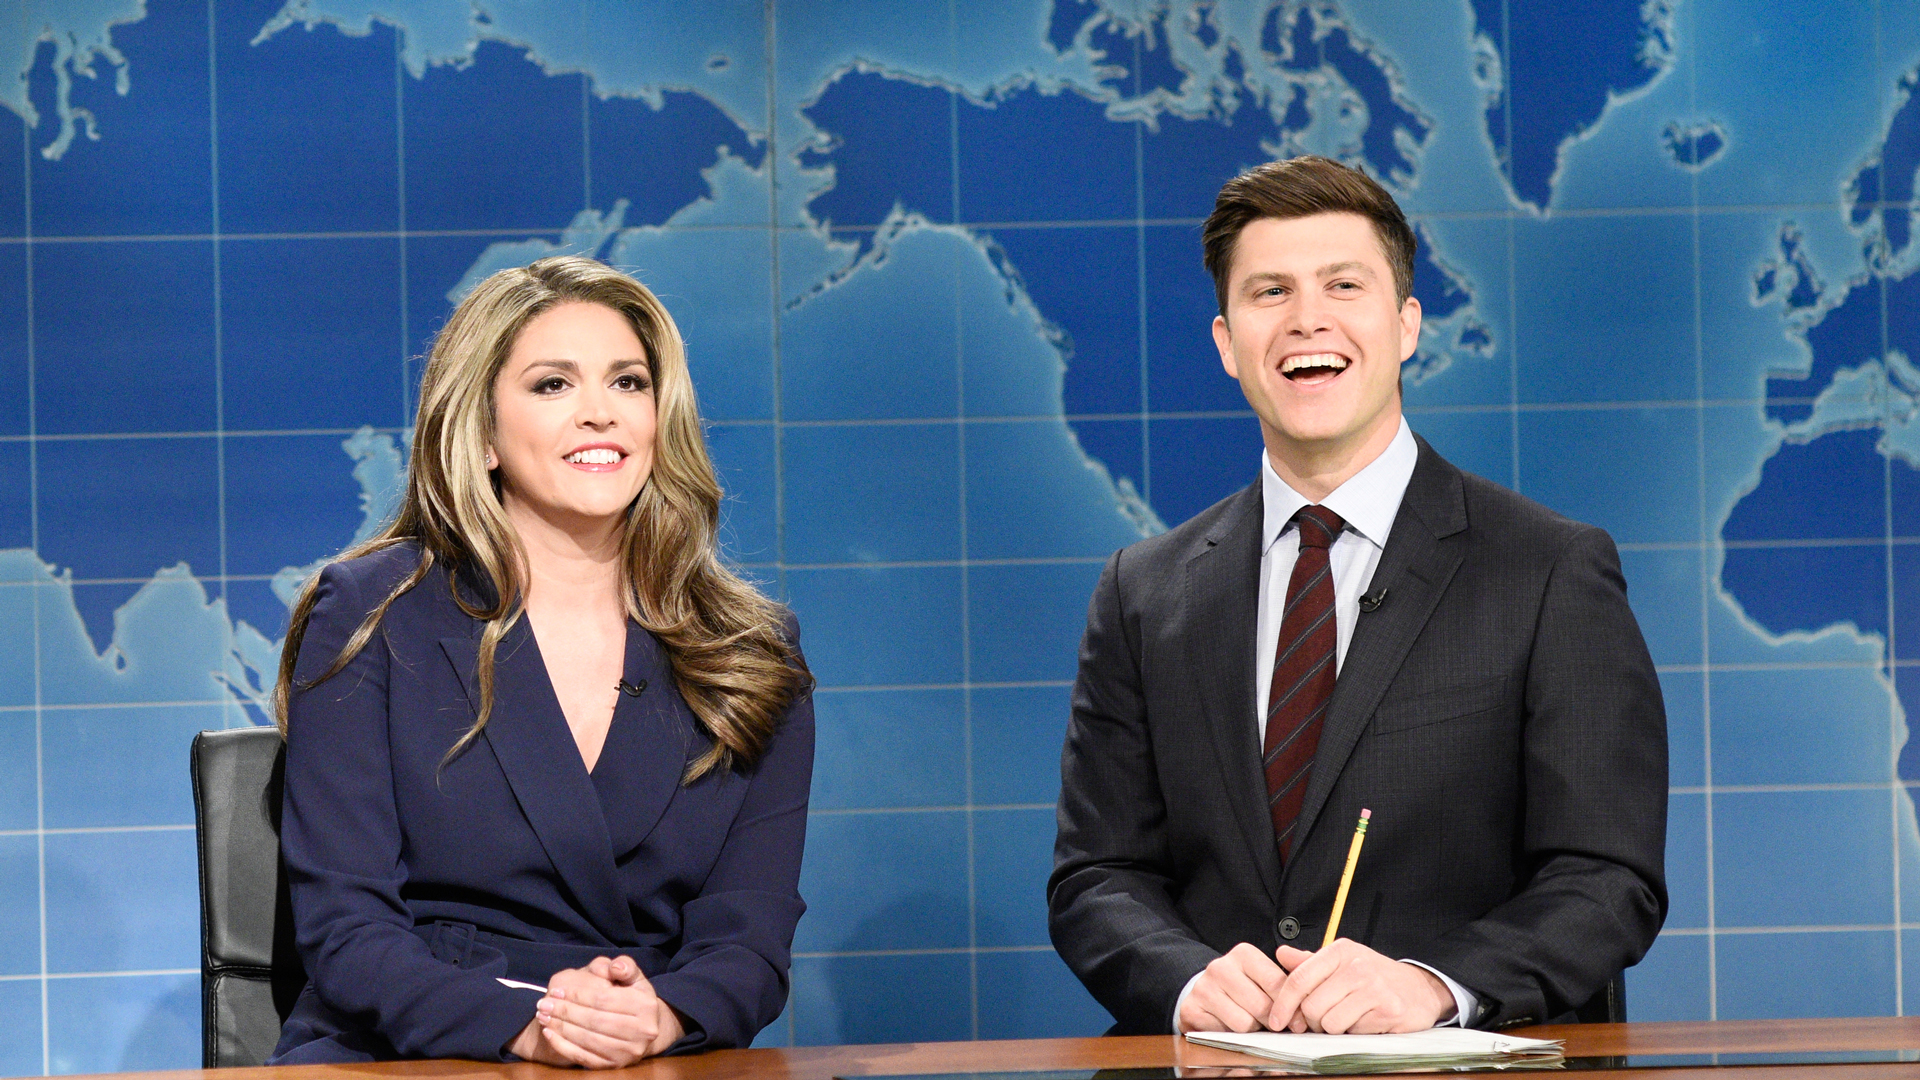 Watch Weekend Update: Hope Hicks From Saturday Night Live ...